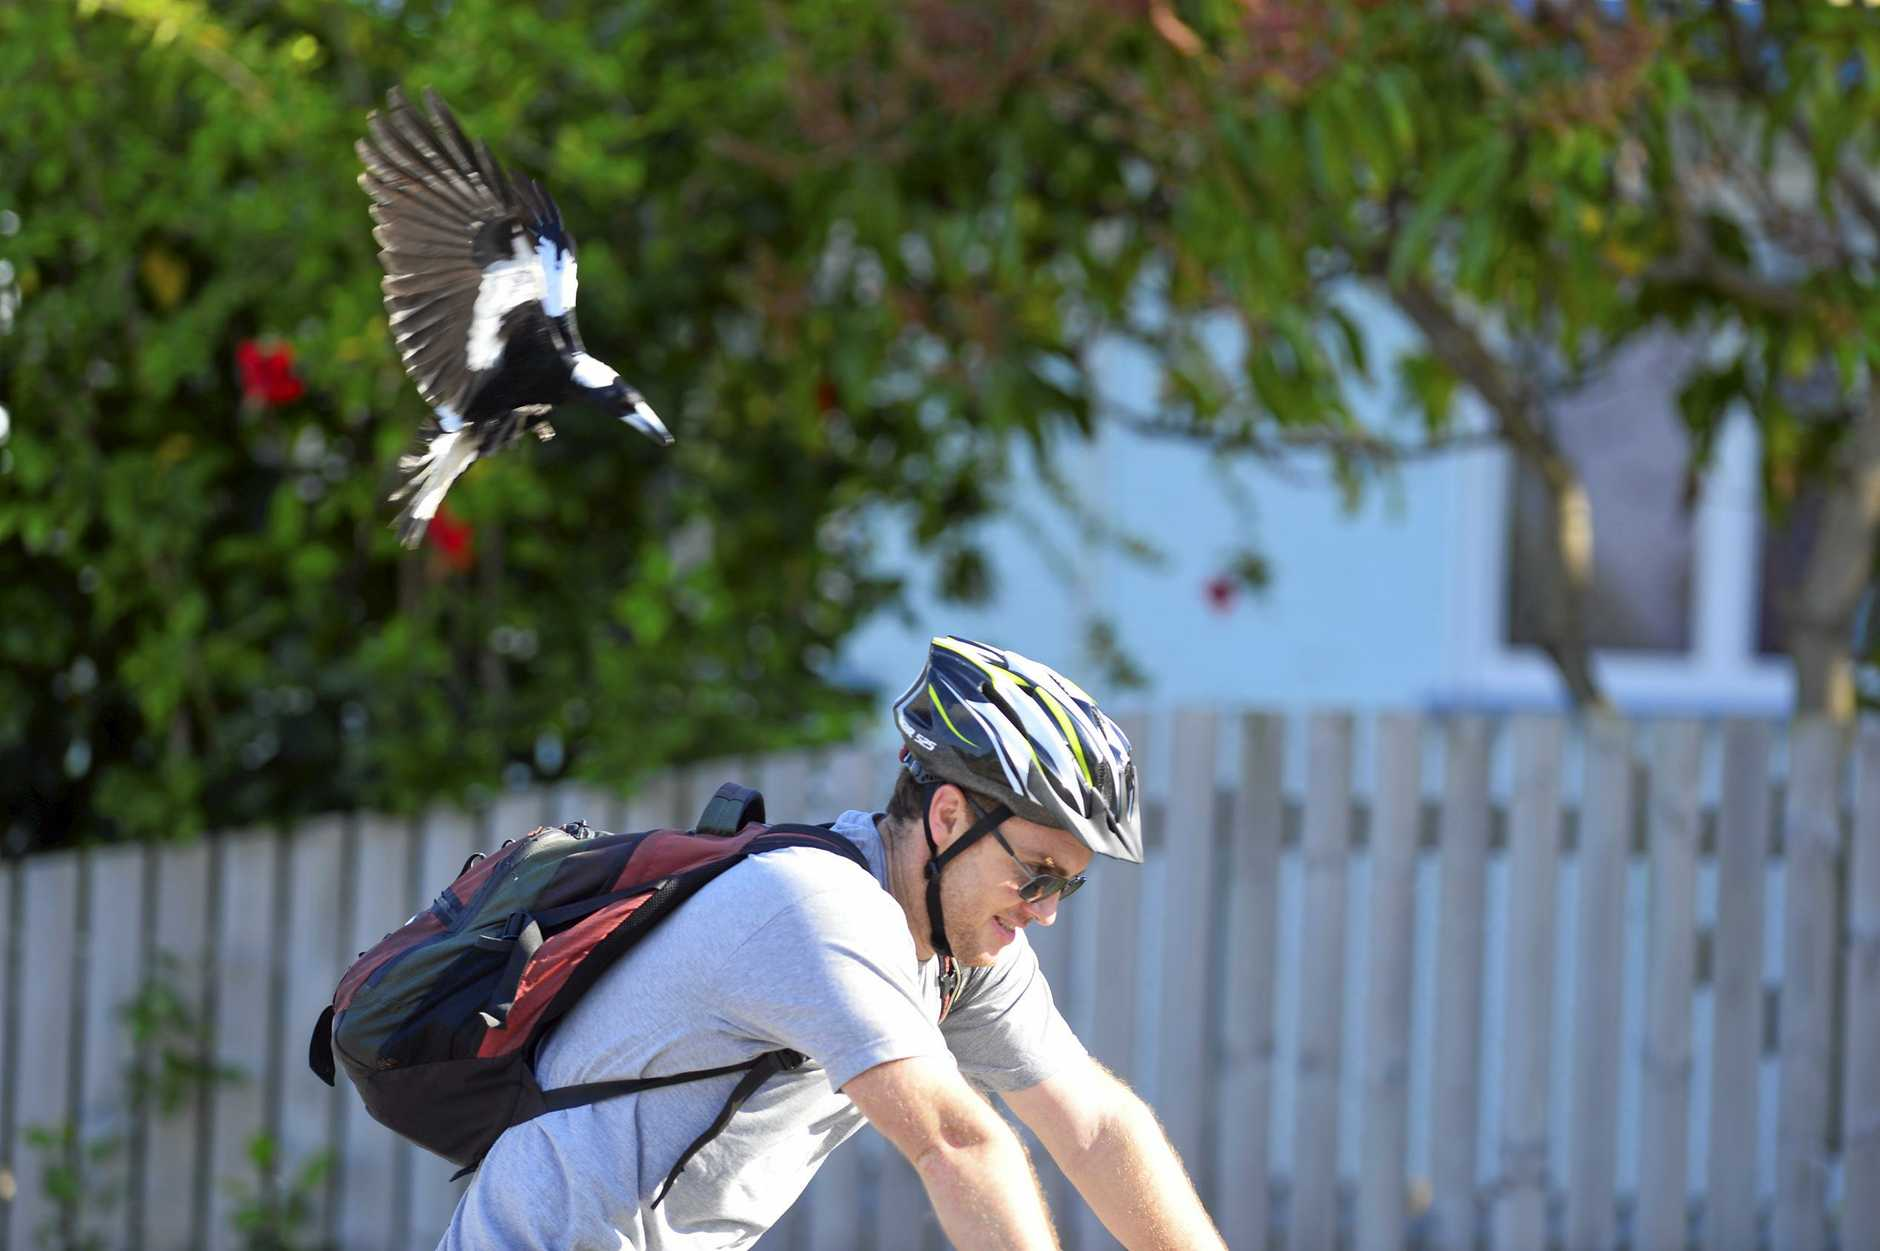 Magpie season is under way, with swooping becoming more frequent in the Mackay, Isaac and Whitsunday region.